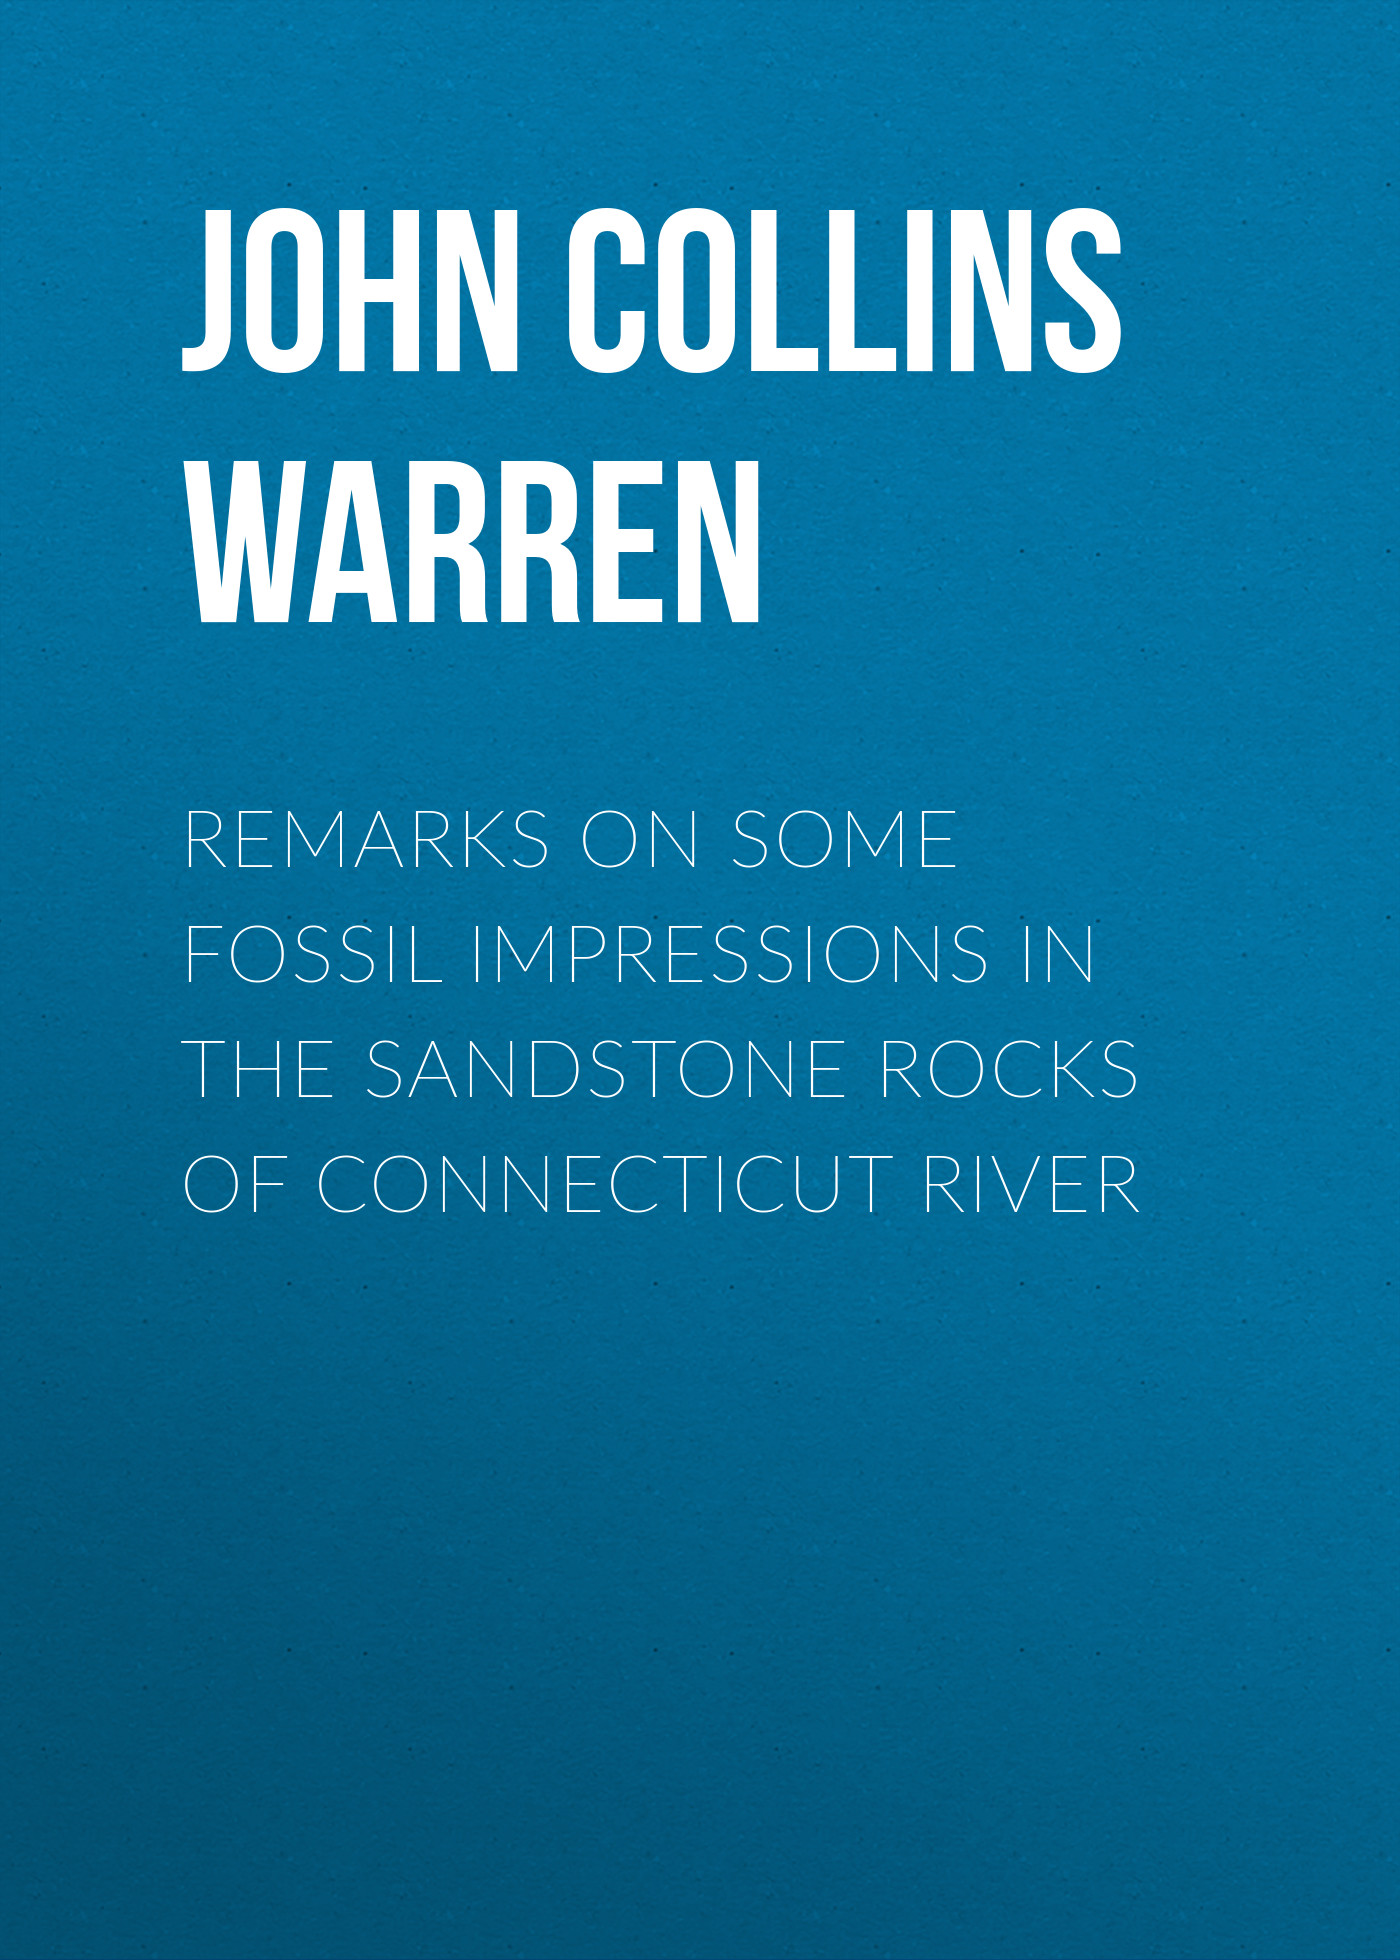 John Collins Warren Remarks on some fossil impressions in the sandstone rocks of Connecticut River collins anne john f kennedy